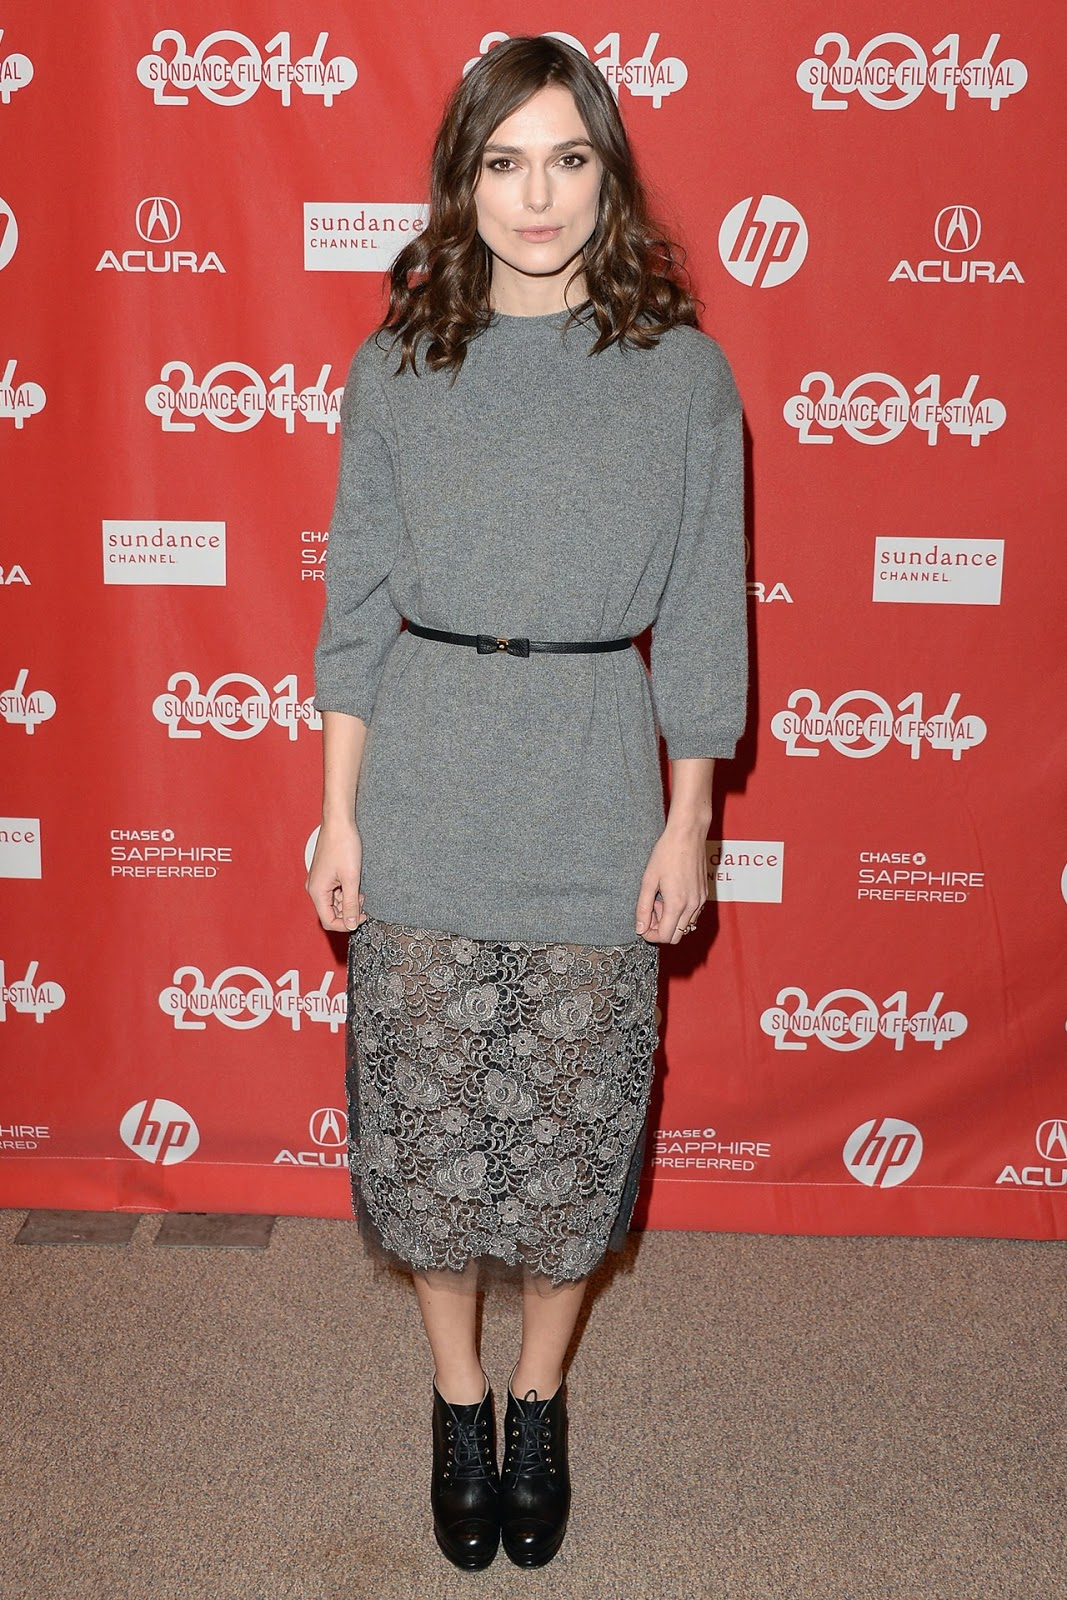 Keira Knightley at Sundance Film Festival in Valentino